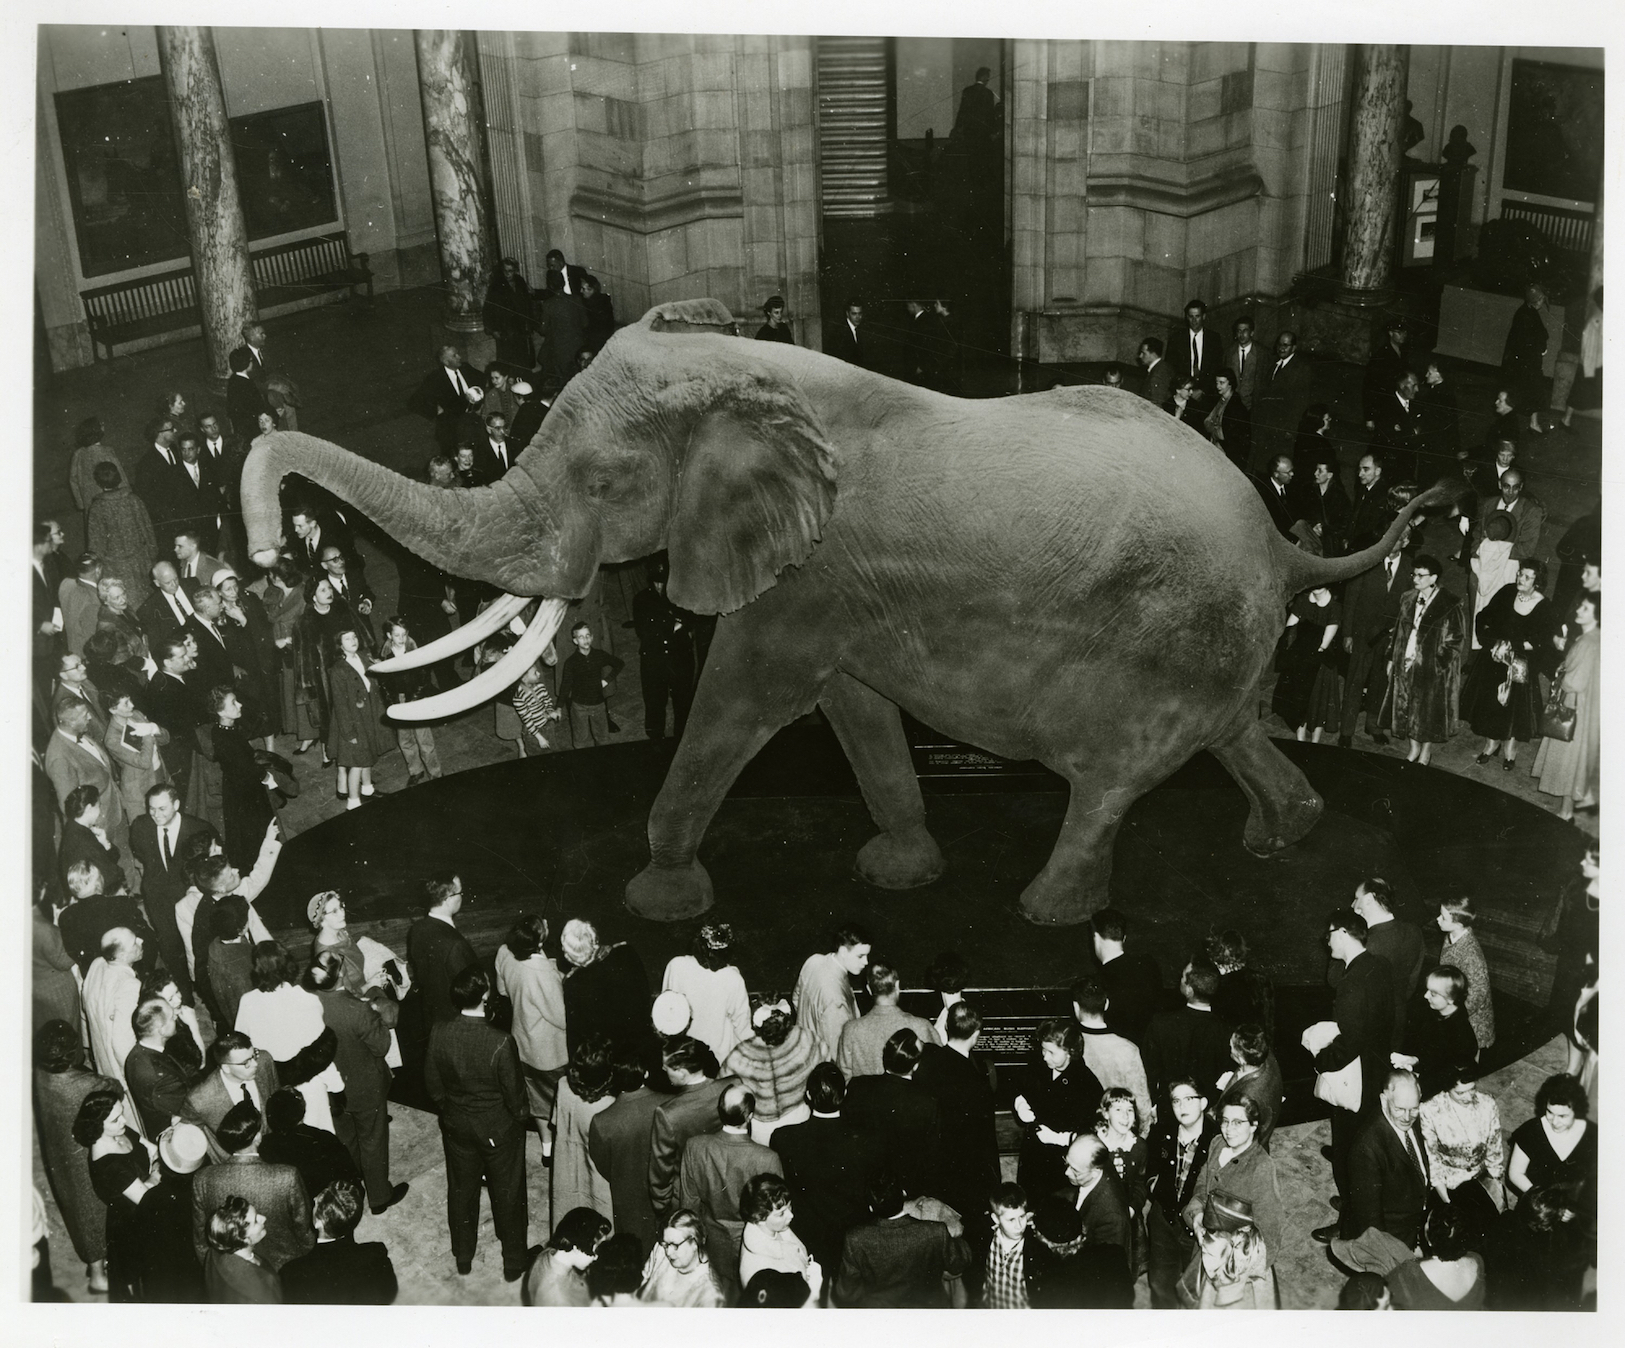 View of the Fénykövi elephant from the balcony of the United States National Museum's Natural History Building. Smithsonian Institution Archives, Accession 00-082, Box 1, Folder 2.